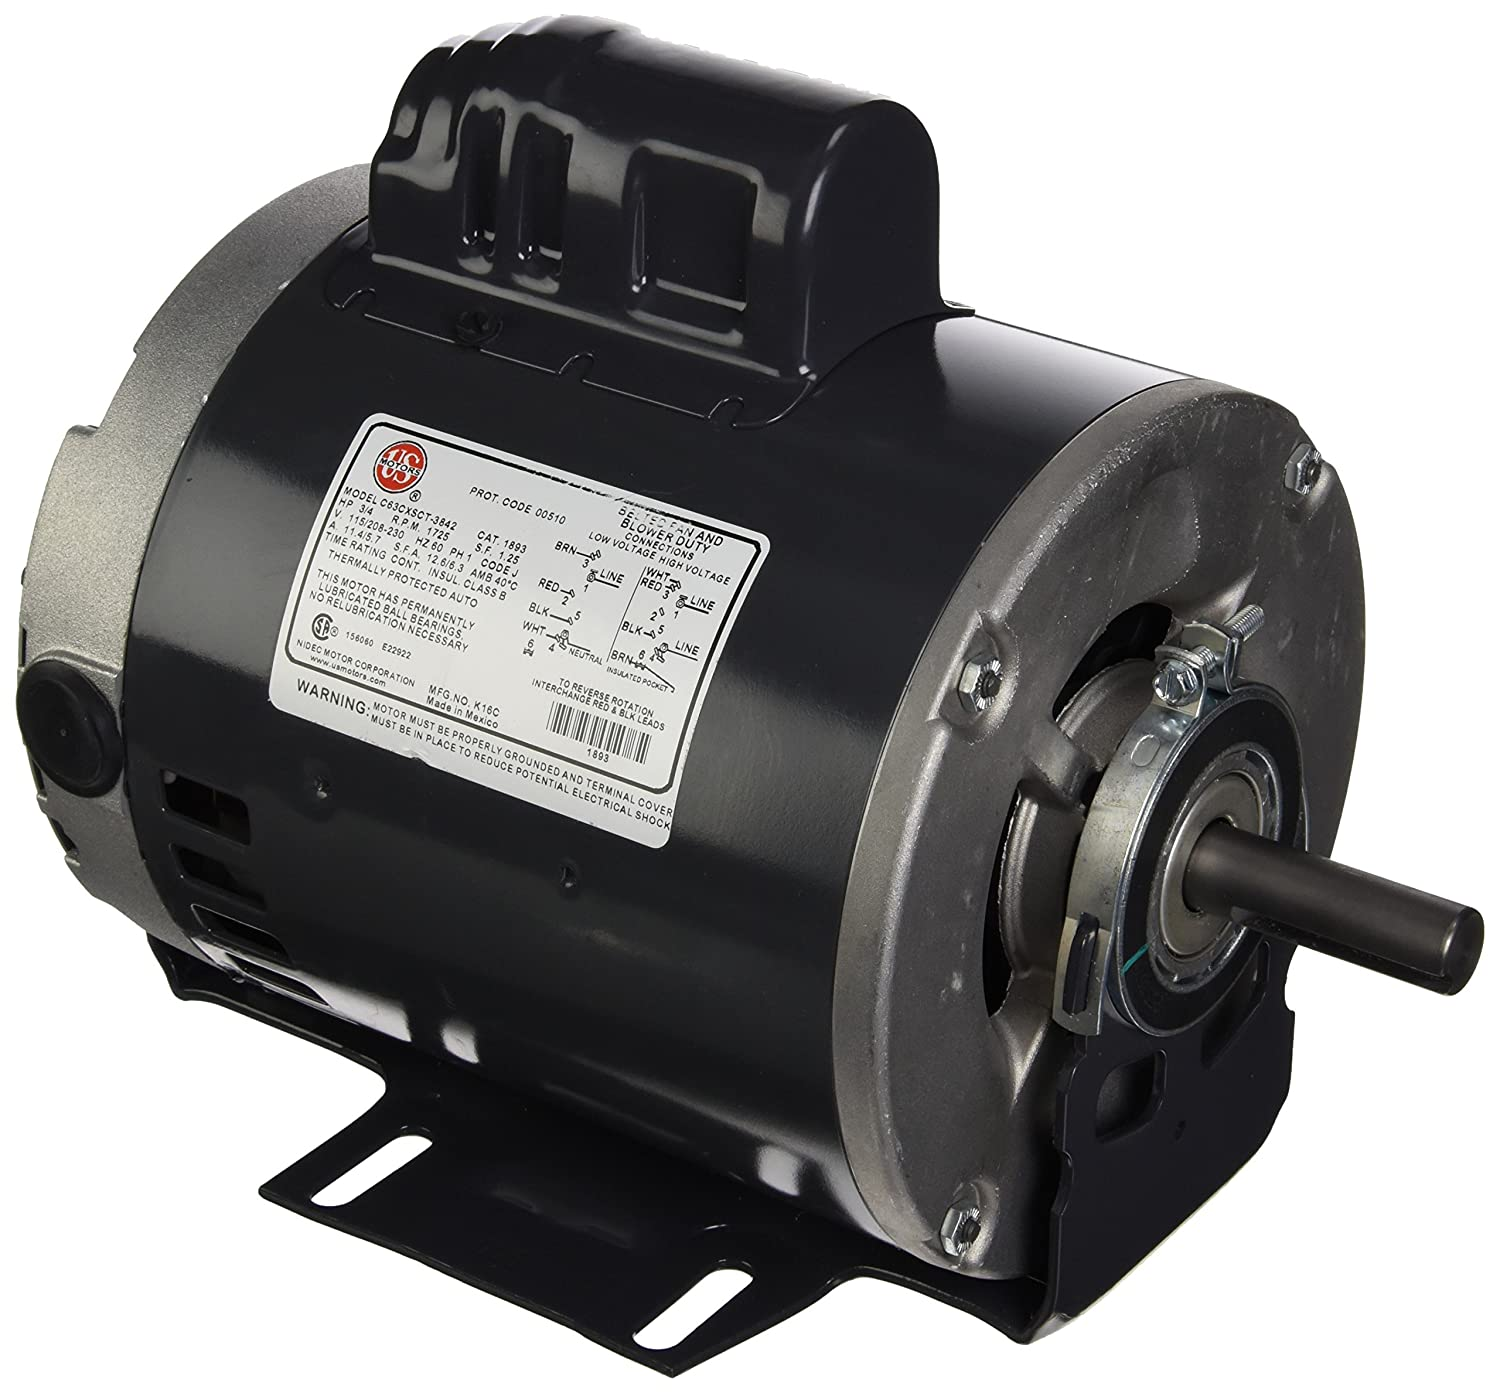 1725 Rpm/1 Speed Rheem Parts Rheem 1893 Blower Motor 3/4 Hp 120-208-230/